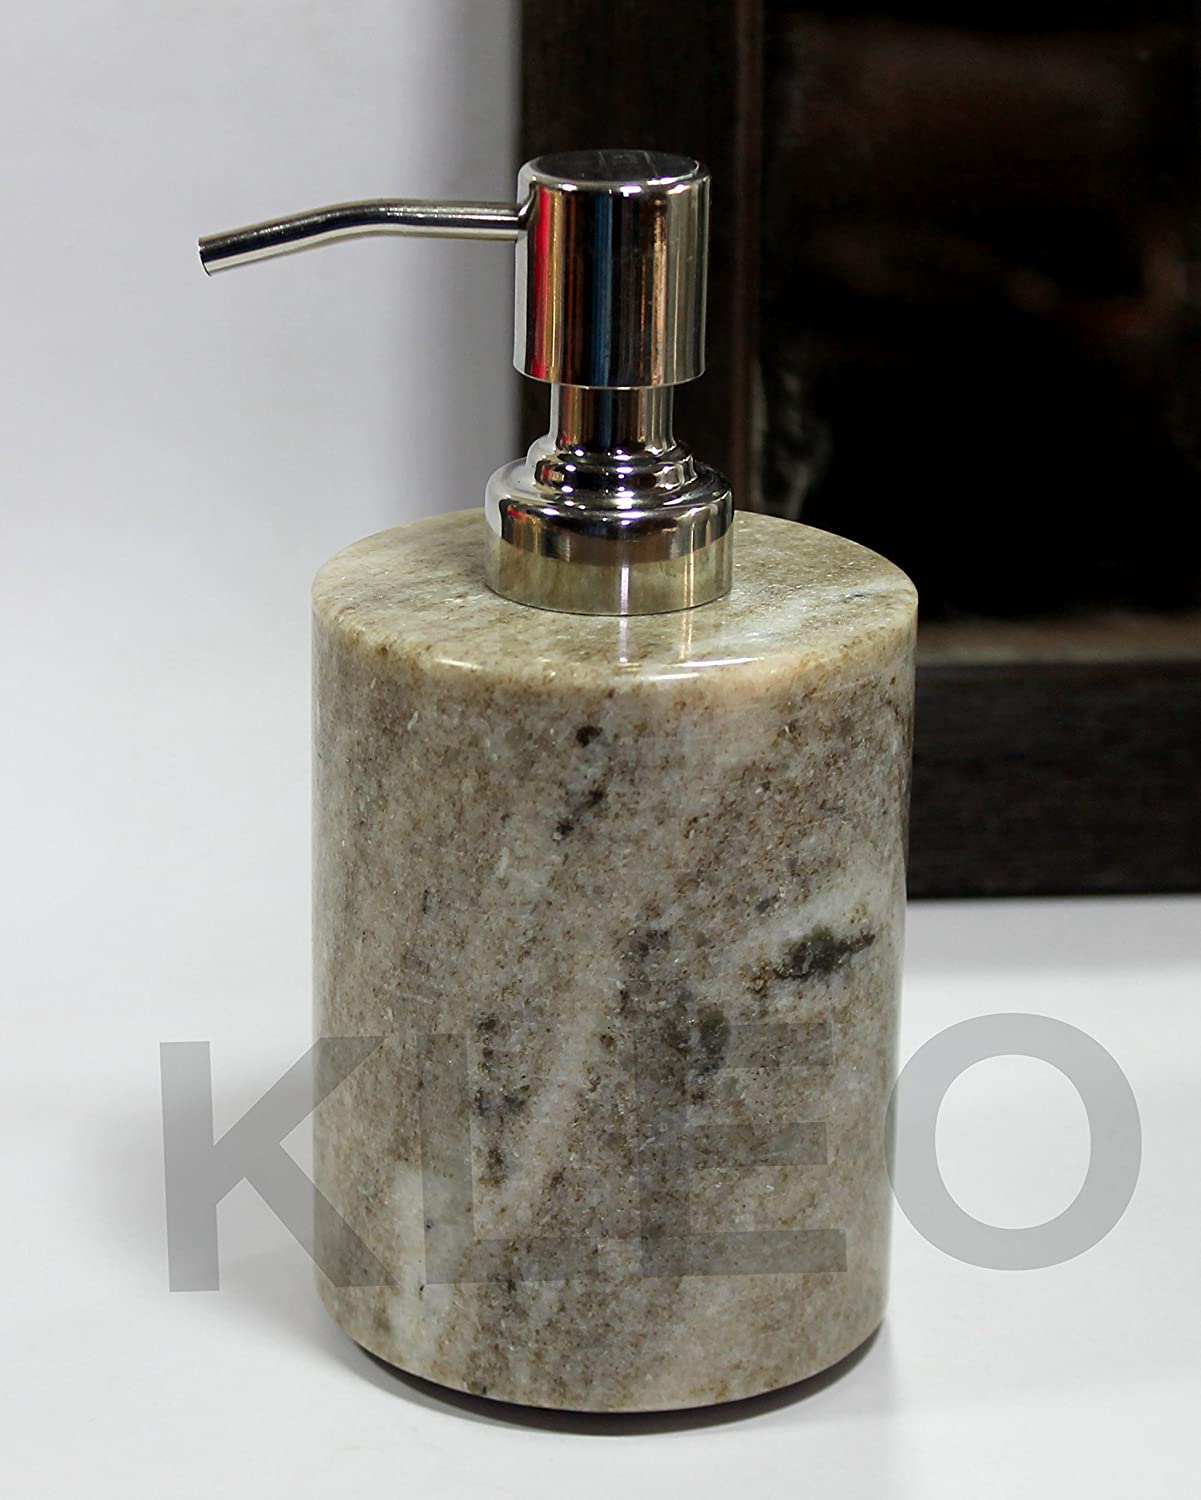 Kleo Soap Dispenser Made Of Marble In Luxury Bathroom Accessories Bath Accessories Lotion Dispenser Brownish Amazon In Home Kitchen